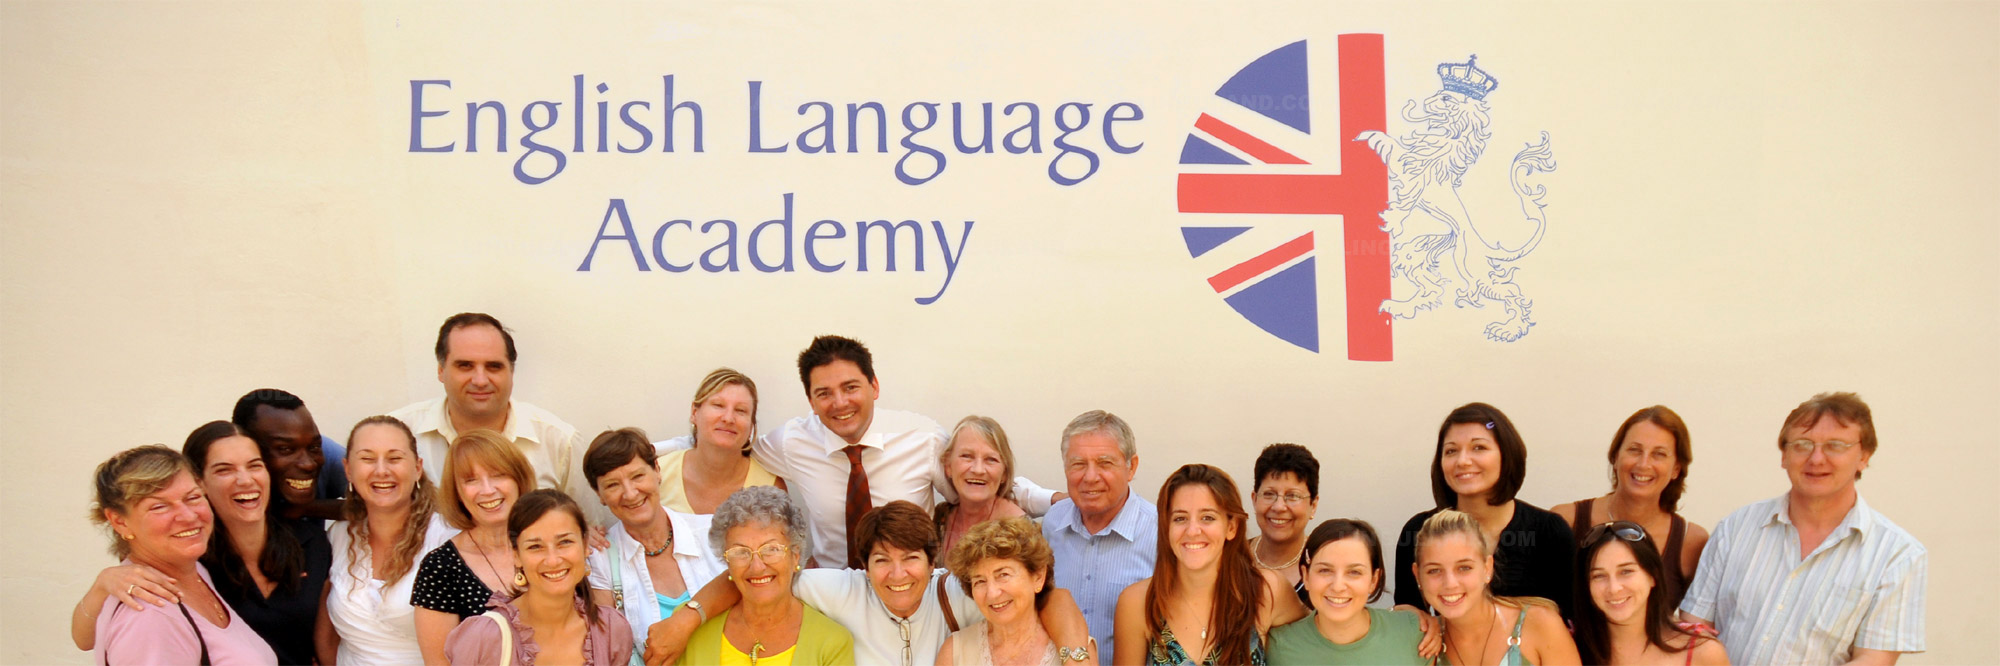 English Language Academy : récits et évaluations